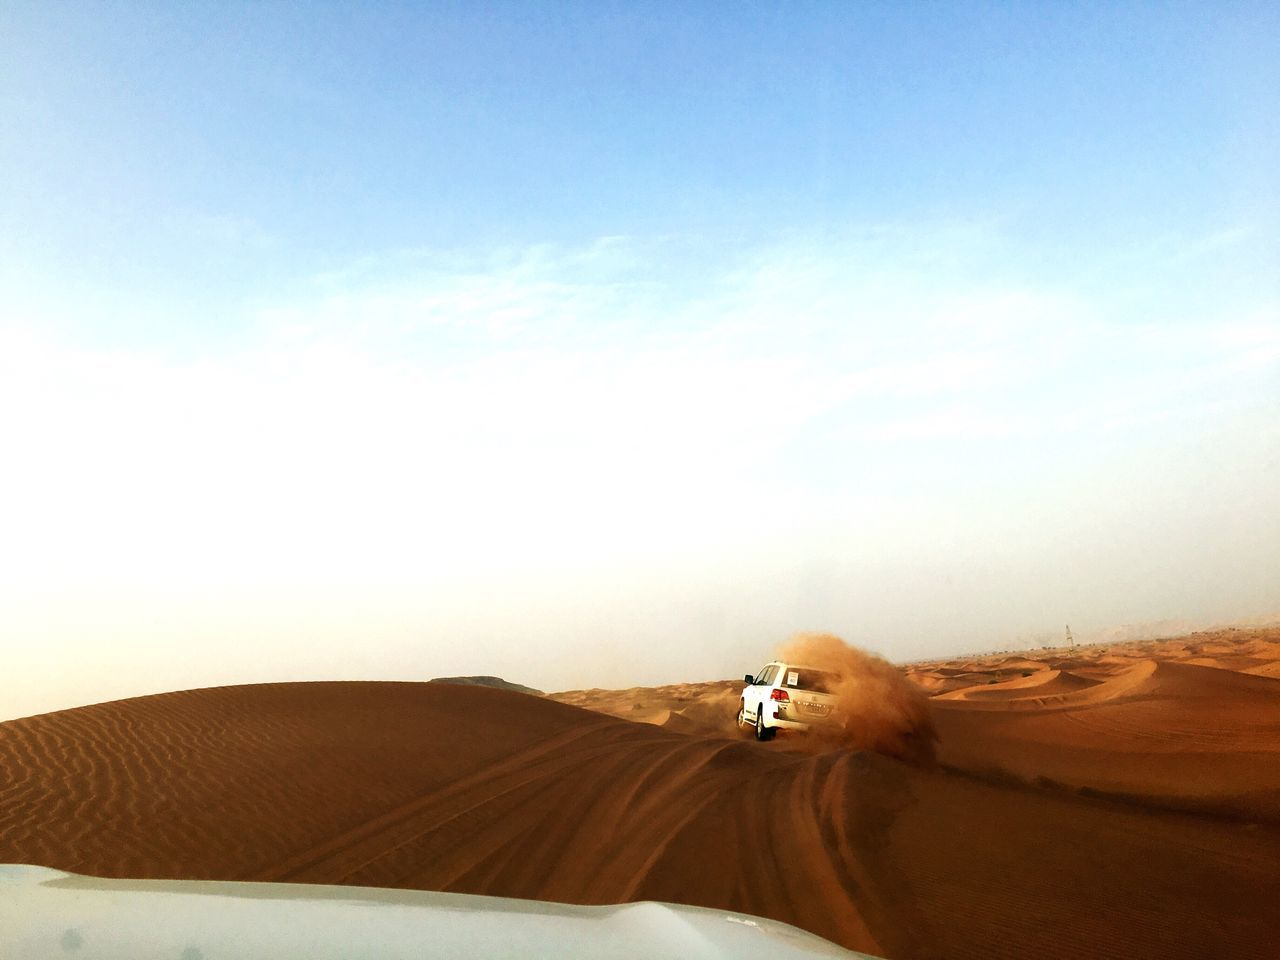 The Drive Desert Safari Dubai Live For The Story The Great Outdoors - 2017 EyeEm Awards